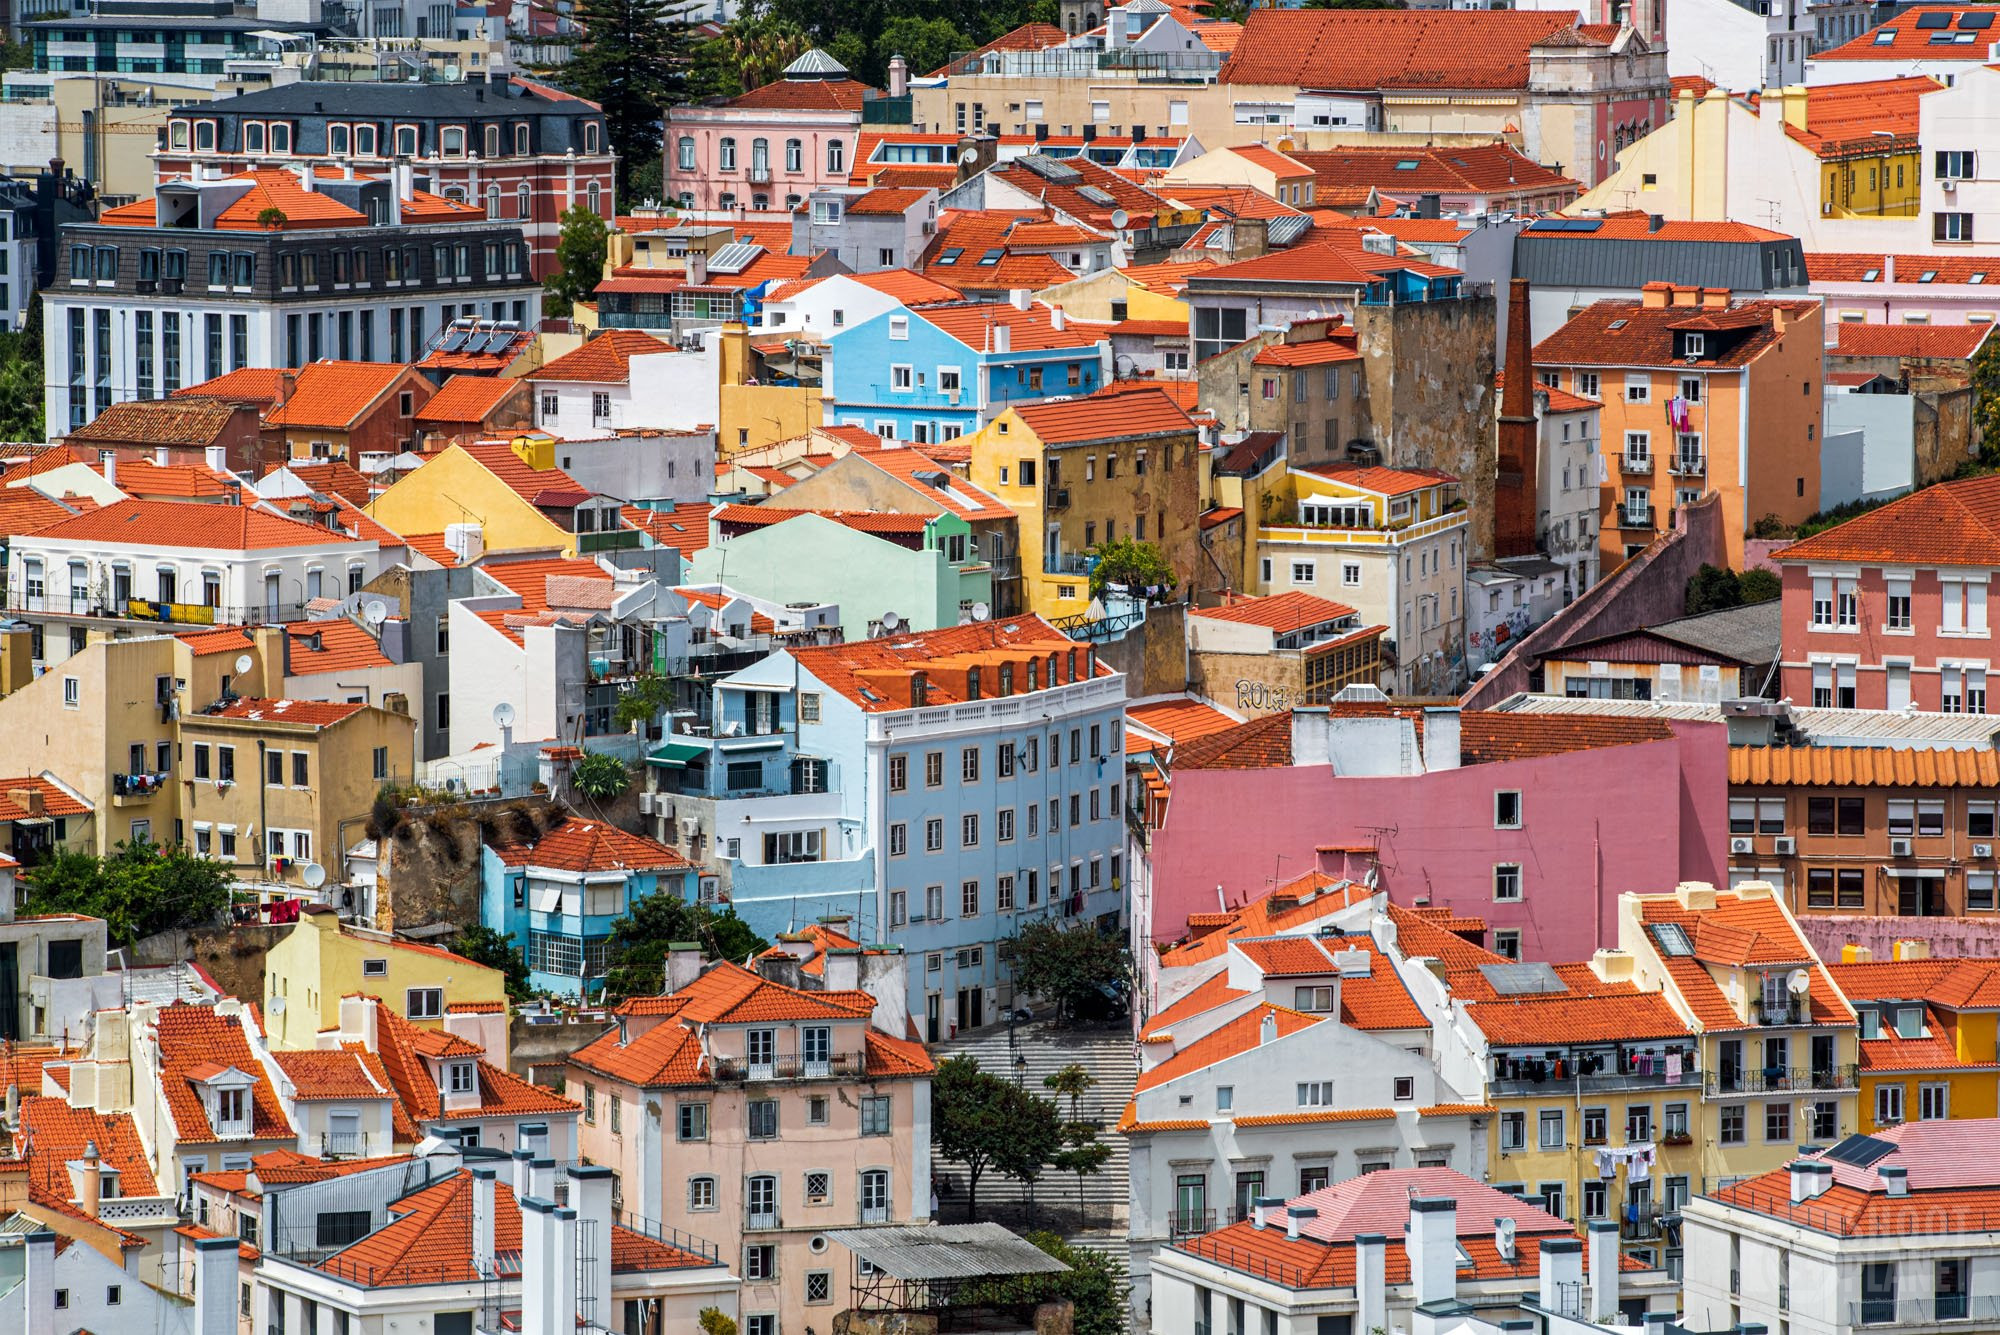 Colorful old town houses of Lisbon, Portugal